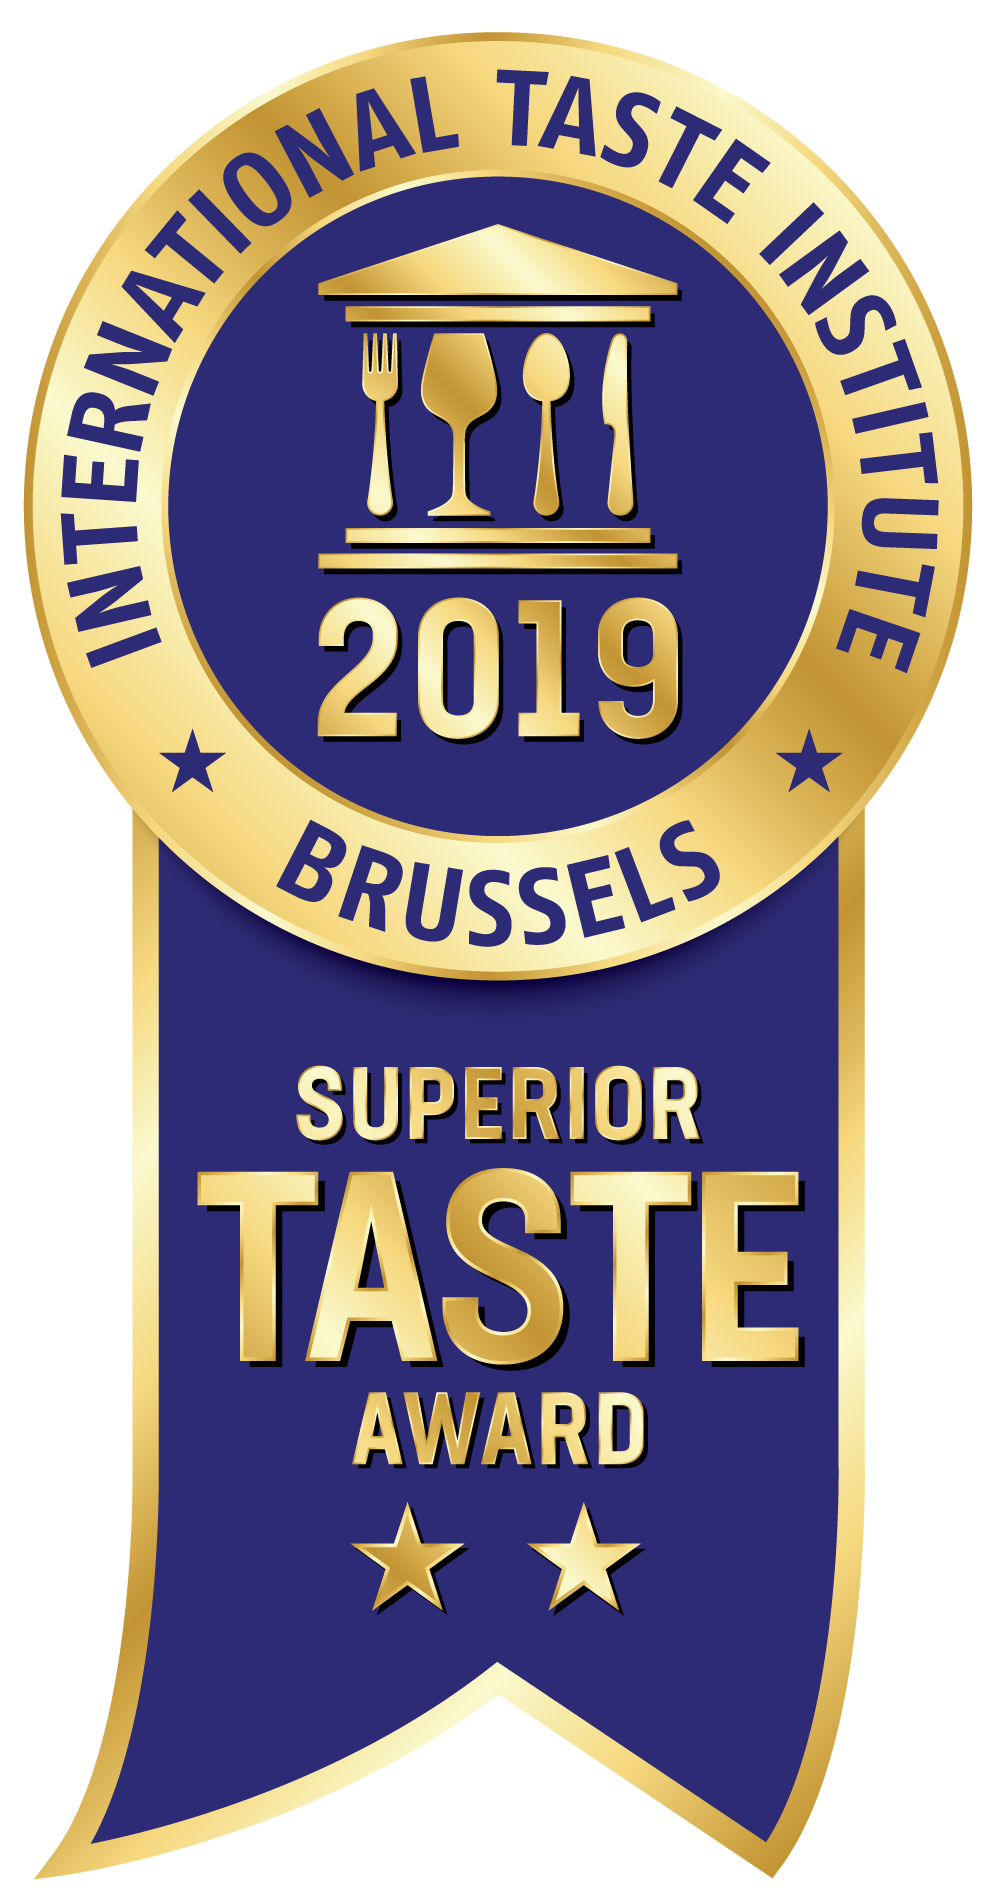 International Taste Institute Bruselles, 2 Estrellas